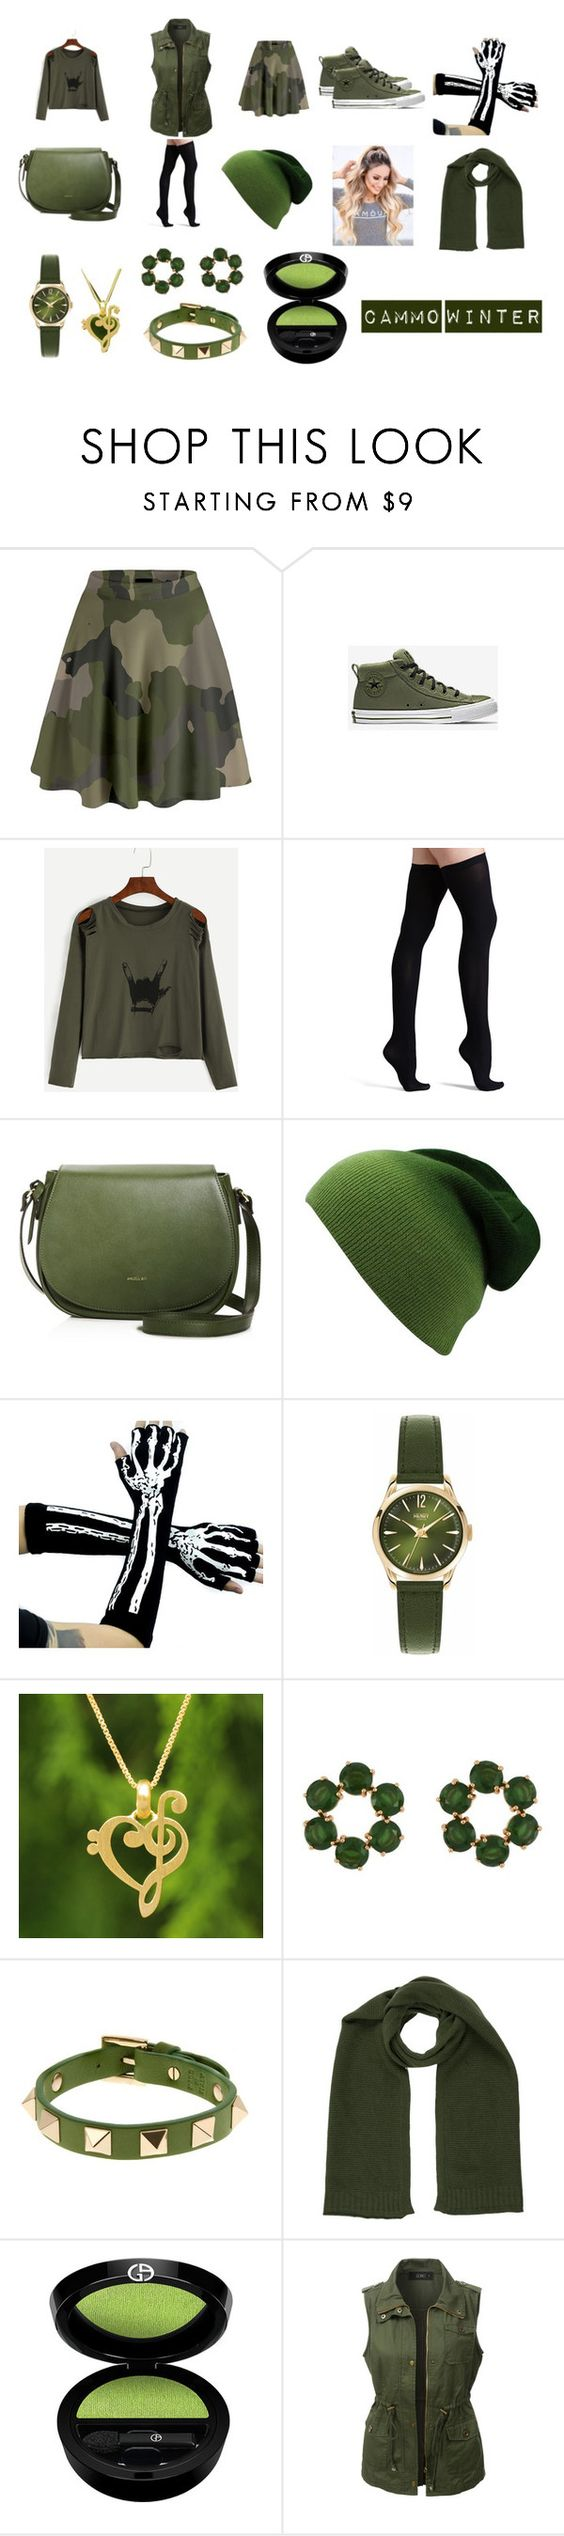 """Cammo Winter"" by nerdy-anime-fan on Polyvore featuring beauty, Commando, Henry London, NOVICA, Les Néréides, Valentino, Belstaff, Giorgio Armani and LE3NO"